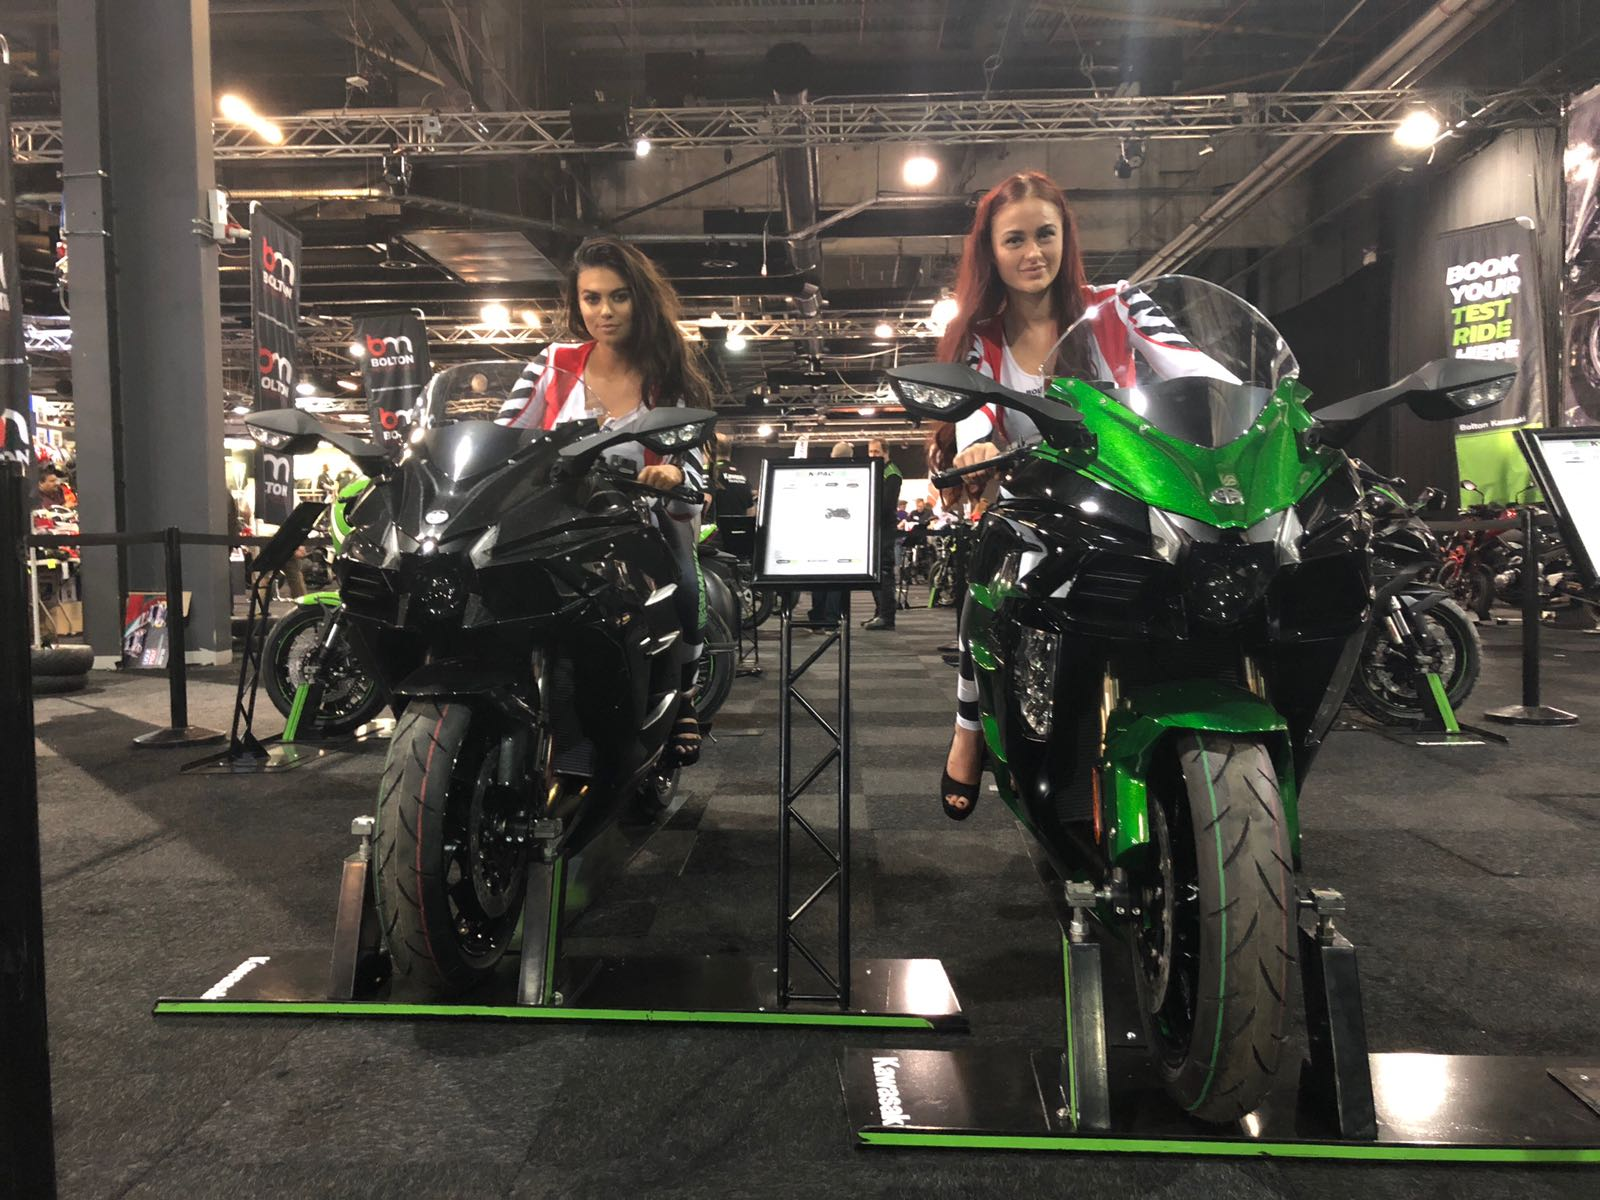 Bolton Motorcycles at the Manchester Motorcycle Show 2018